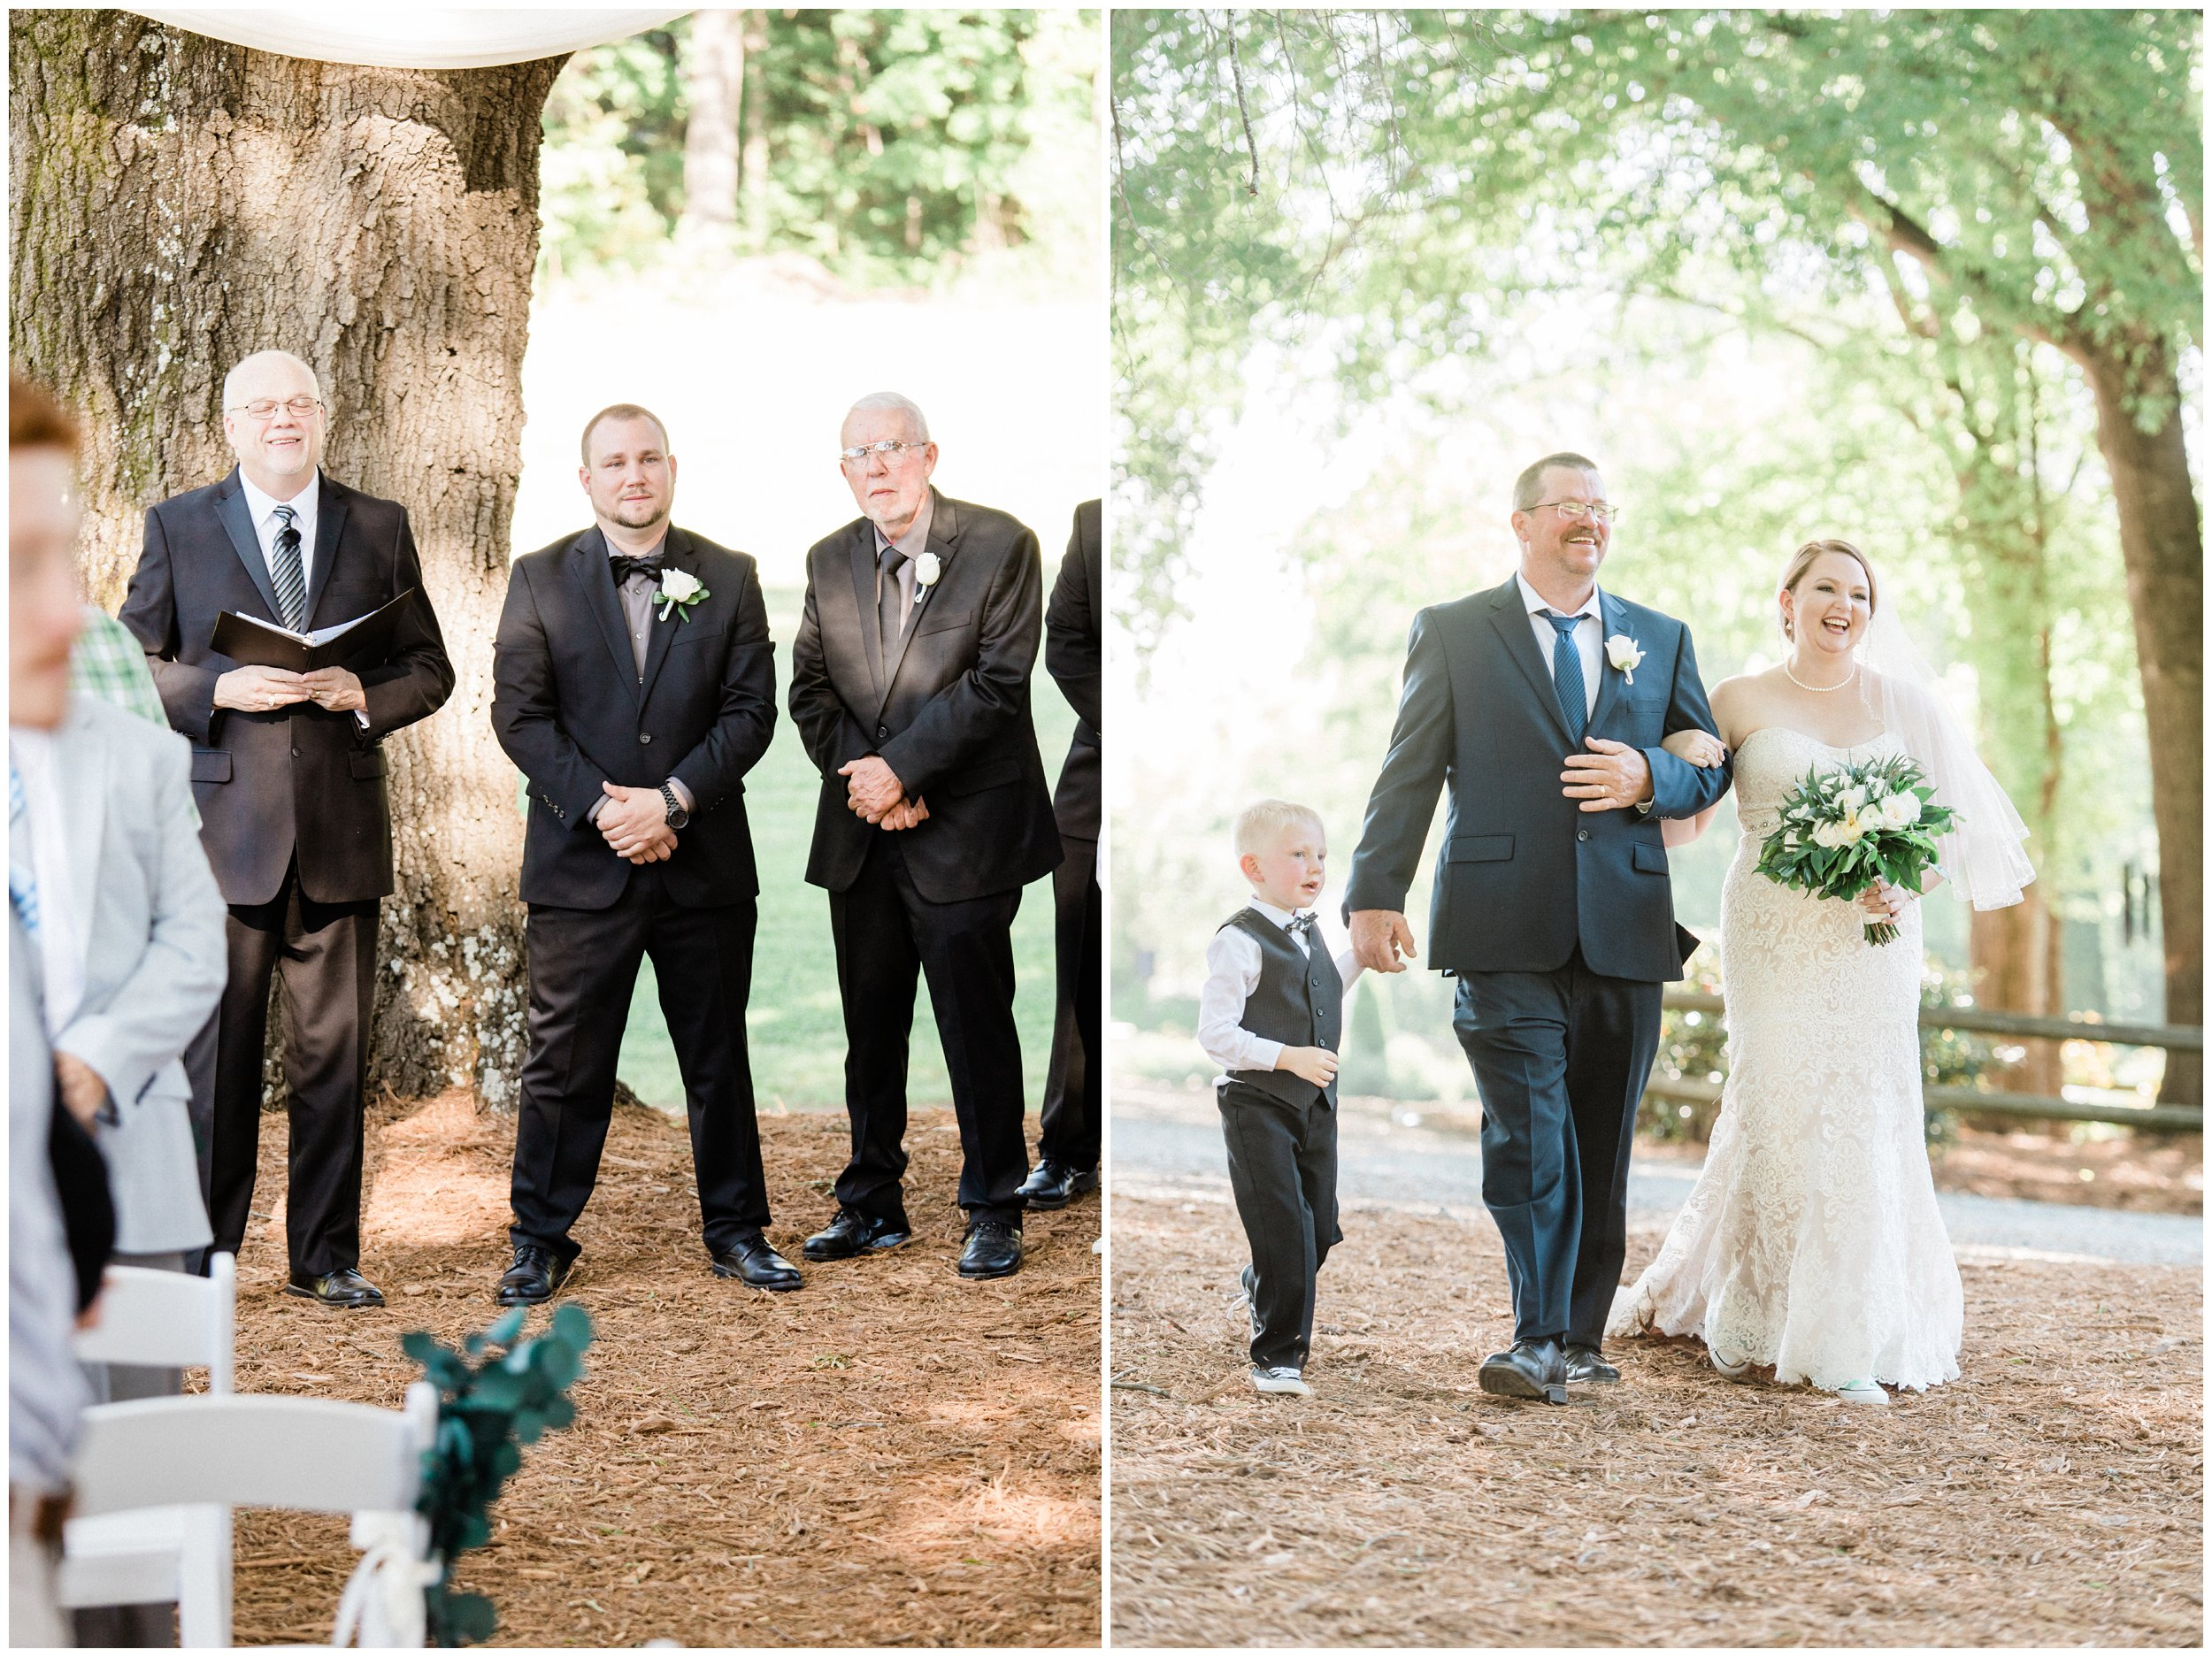 groom waiting for bride as father and son walk her down the aisle